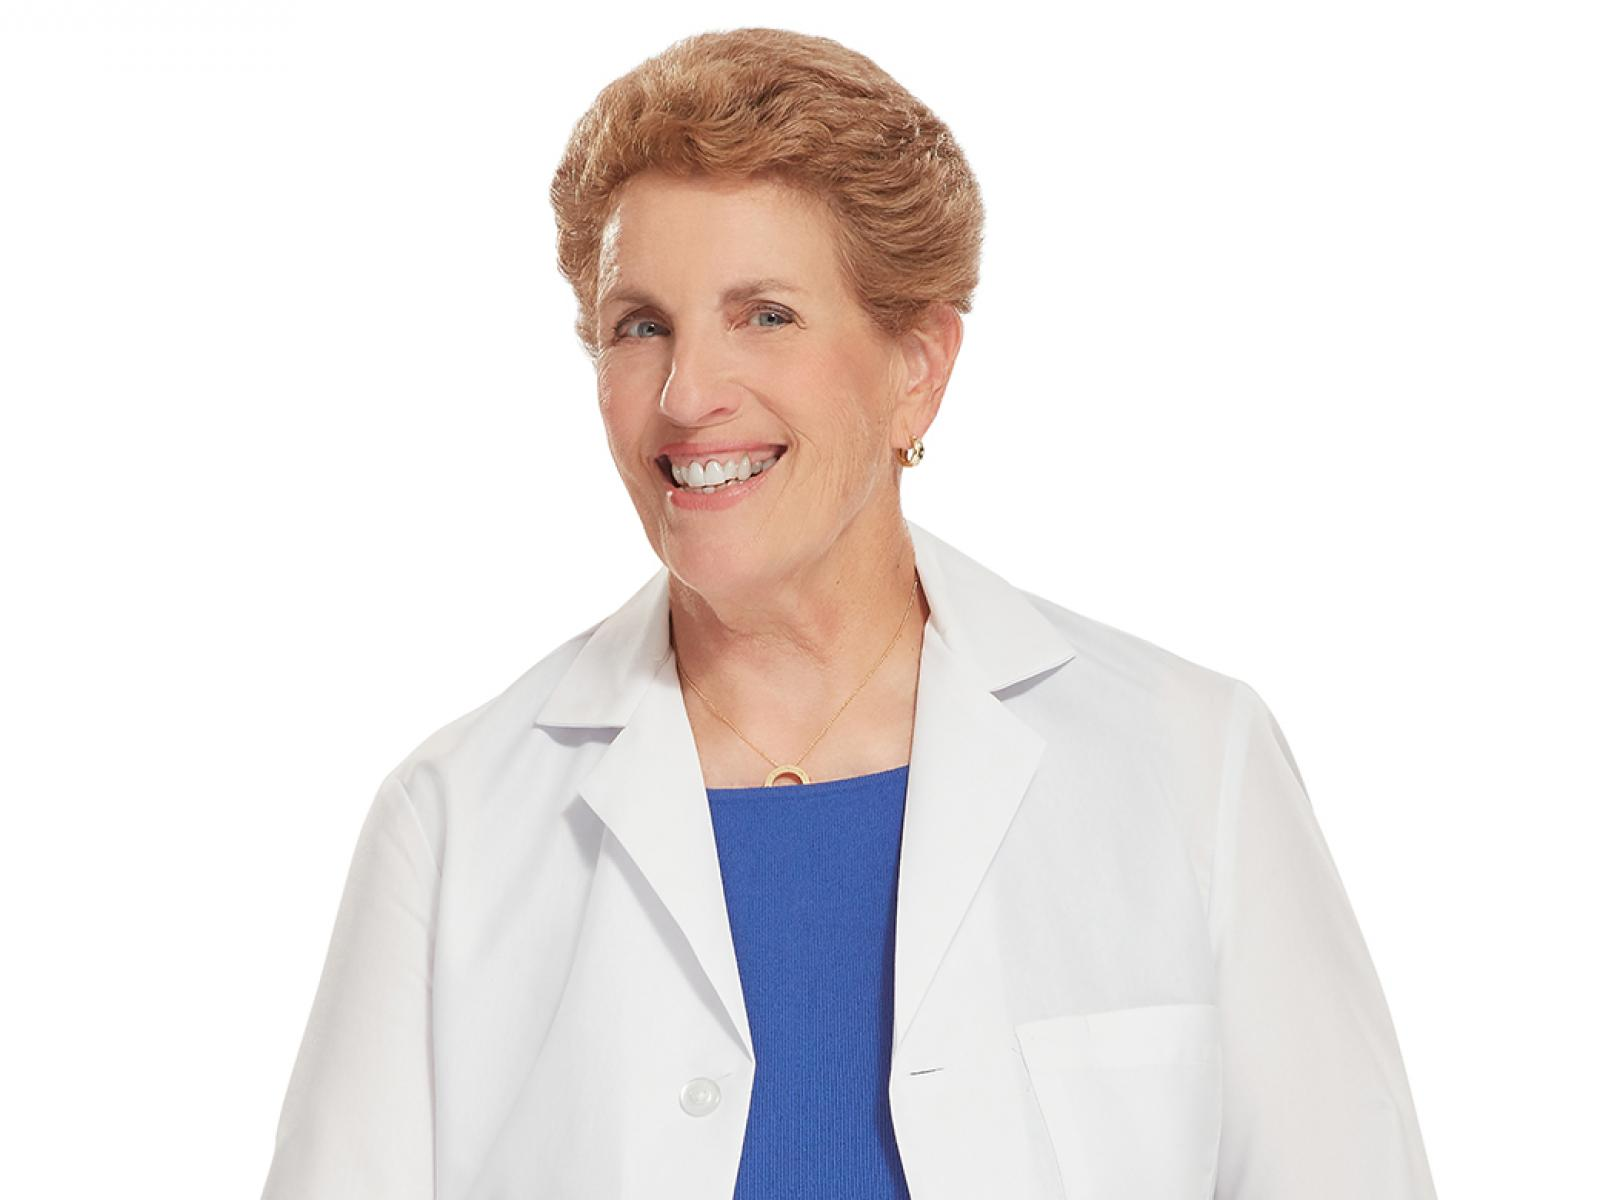 Dr. Claire V. Wolfe. Wolfe is a rehabilitation specialist and is based in Columbus, Ohio.